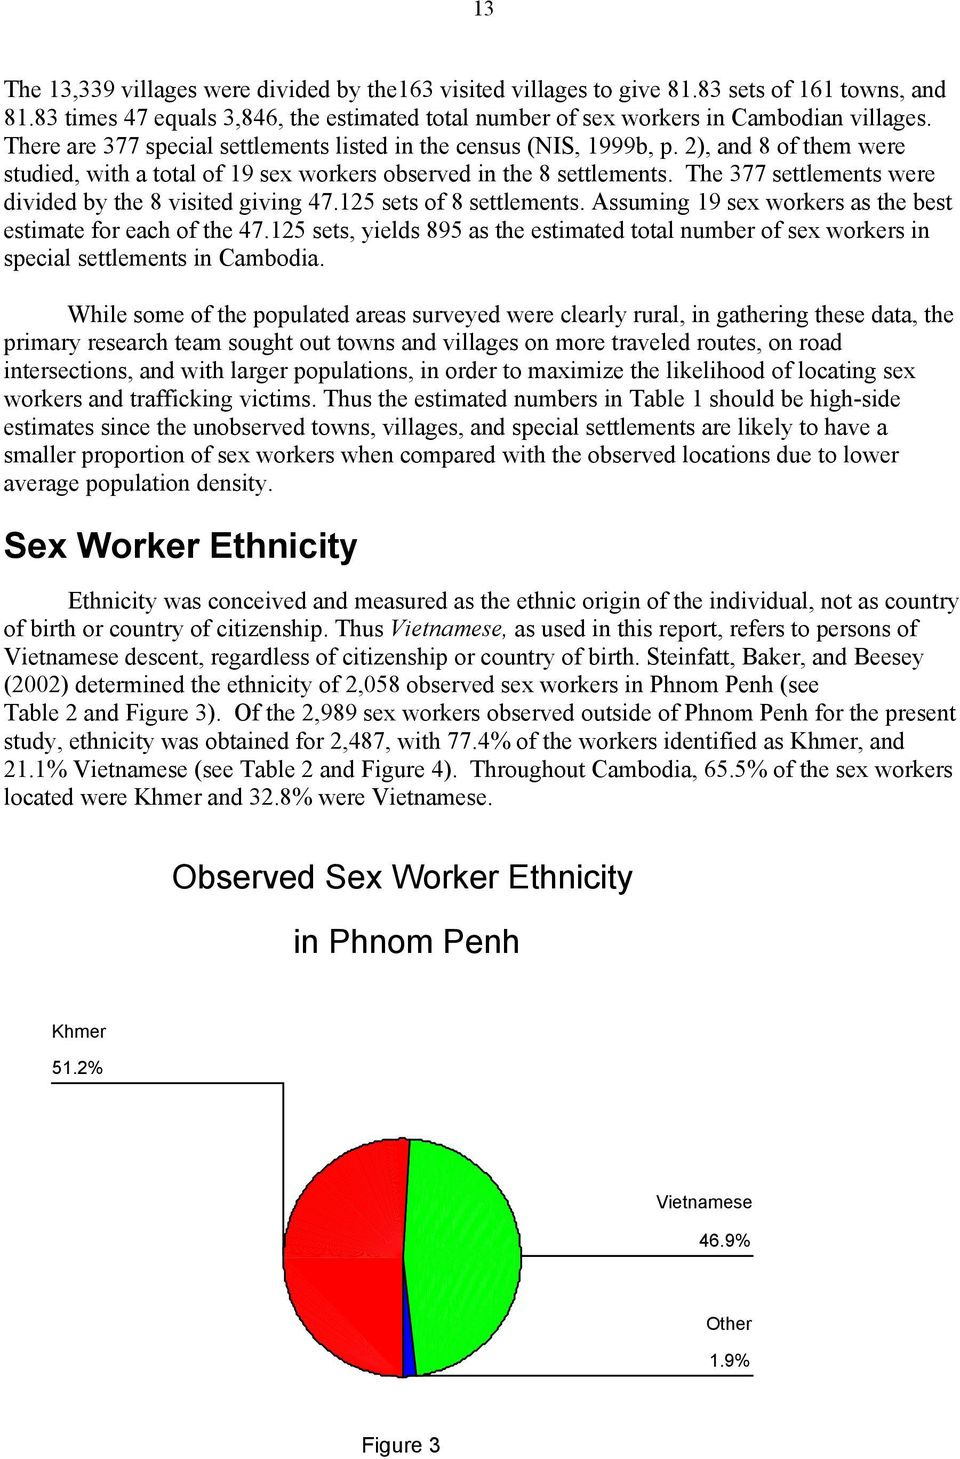 The 377 settlements were divided by the 8 visited giving 47.125 sets of 8 settlements. Assuming 19 sex workers as the best estimate for each of the 47.